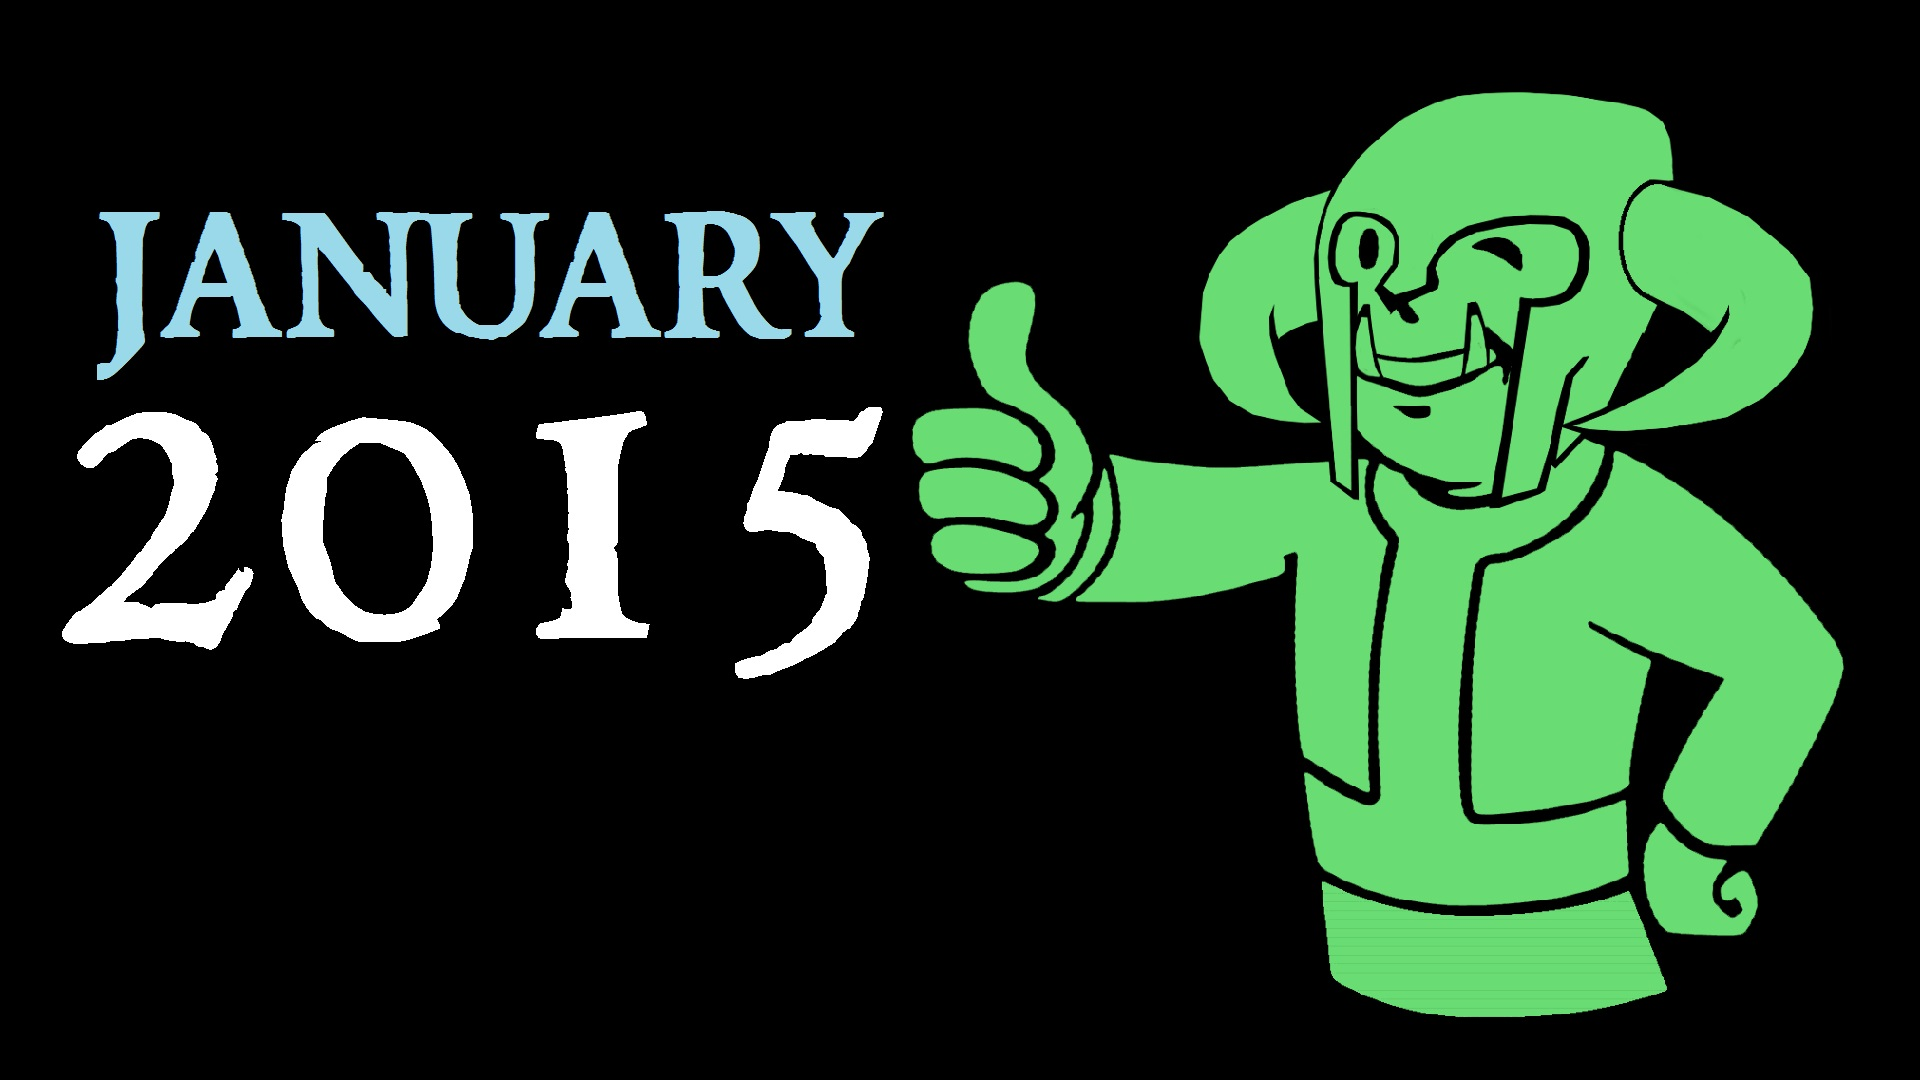 Minions Monthly jan 2015